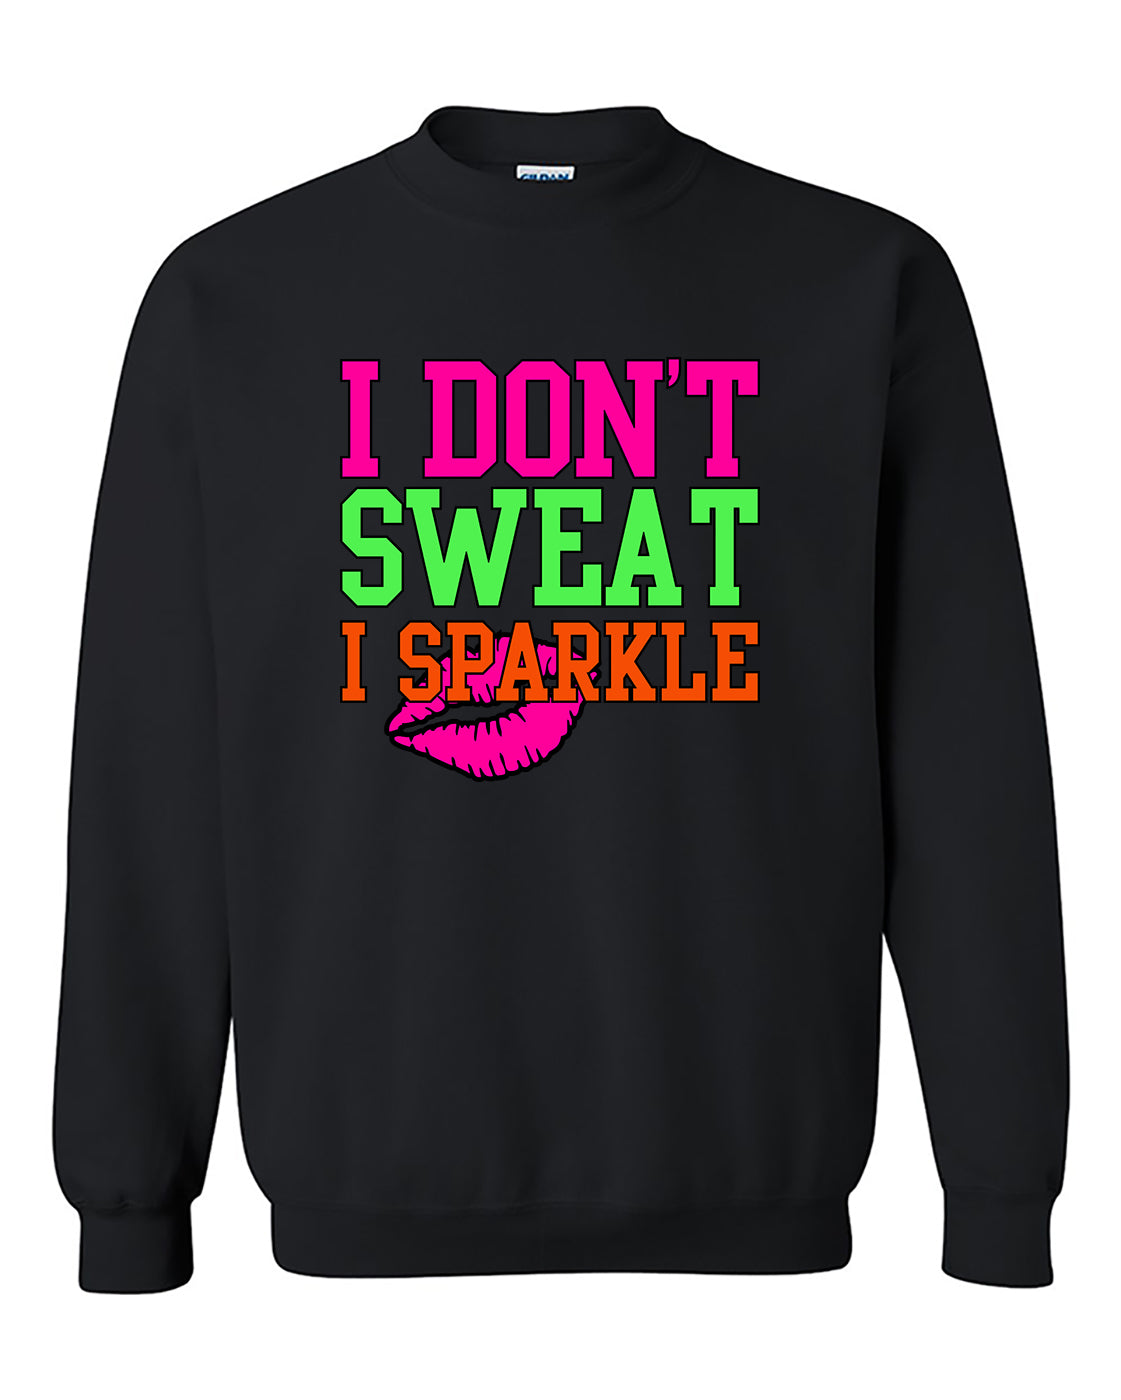 I Dont Sweat I Sparkle Funny Workout Gym Fitness Crewneck Sweater